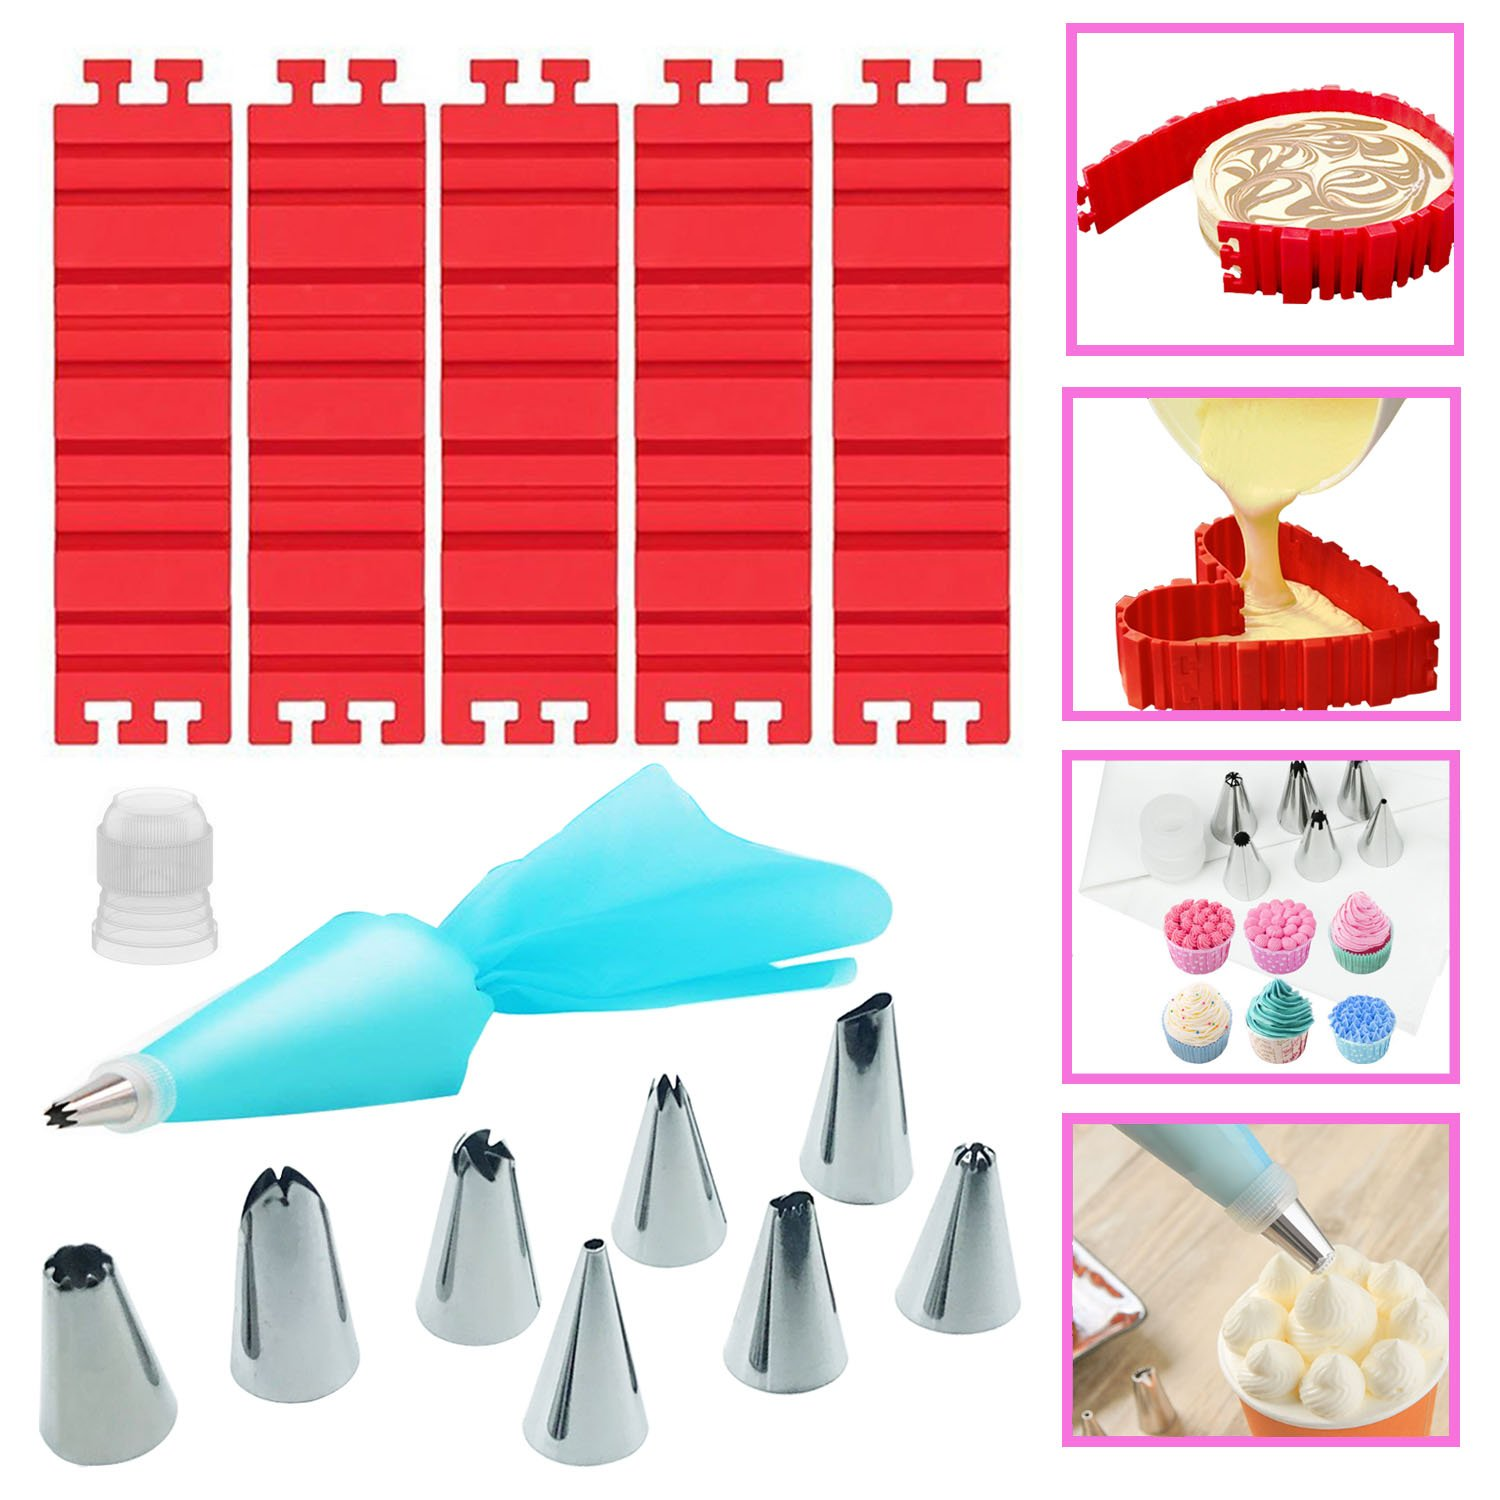 Woohome 13 PCS Silicone Mold Magic Snake and Cake Decorating Tips Combo for Design Your Cakes Any Shape, Muffin Cups - DIY Baking Mould tools for Various dessert